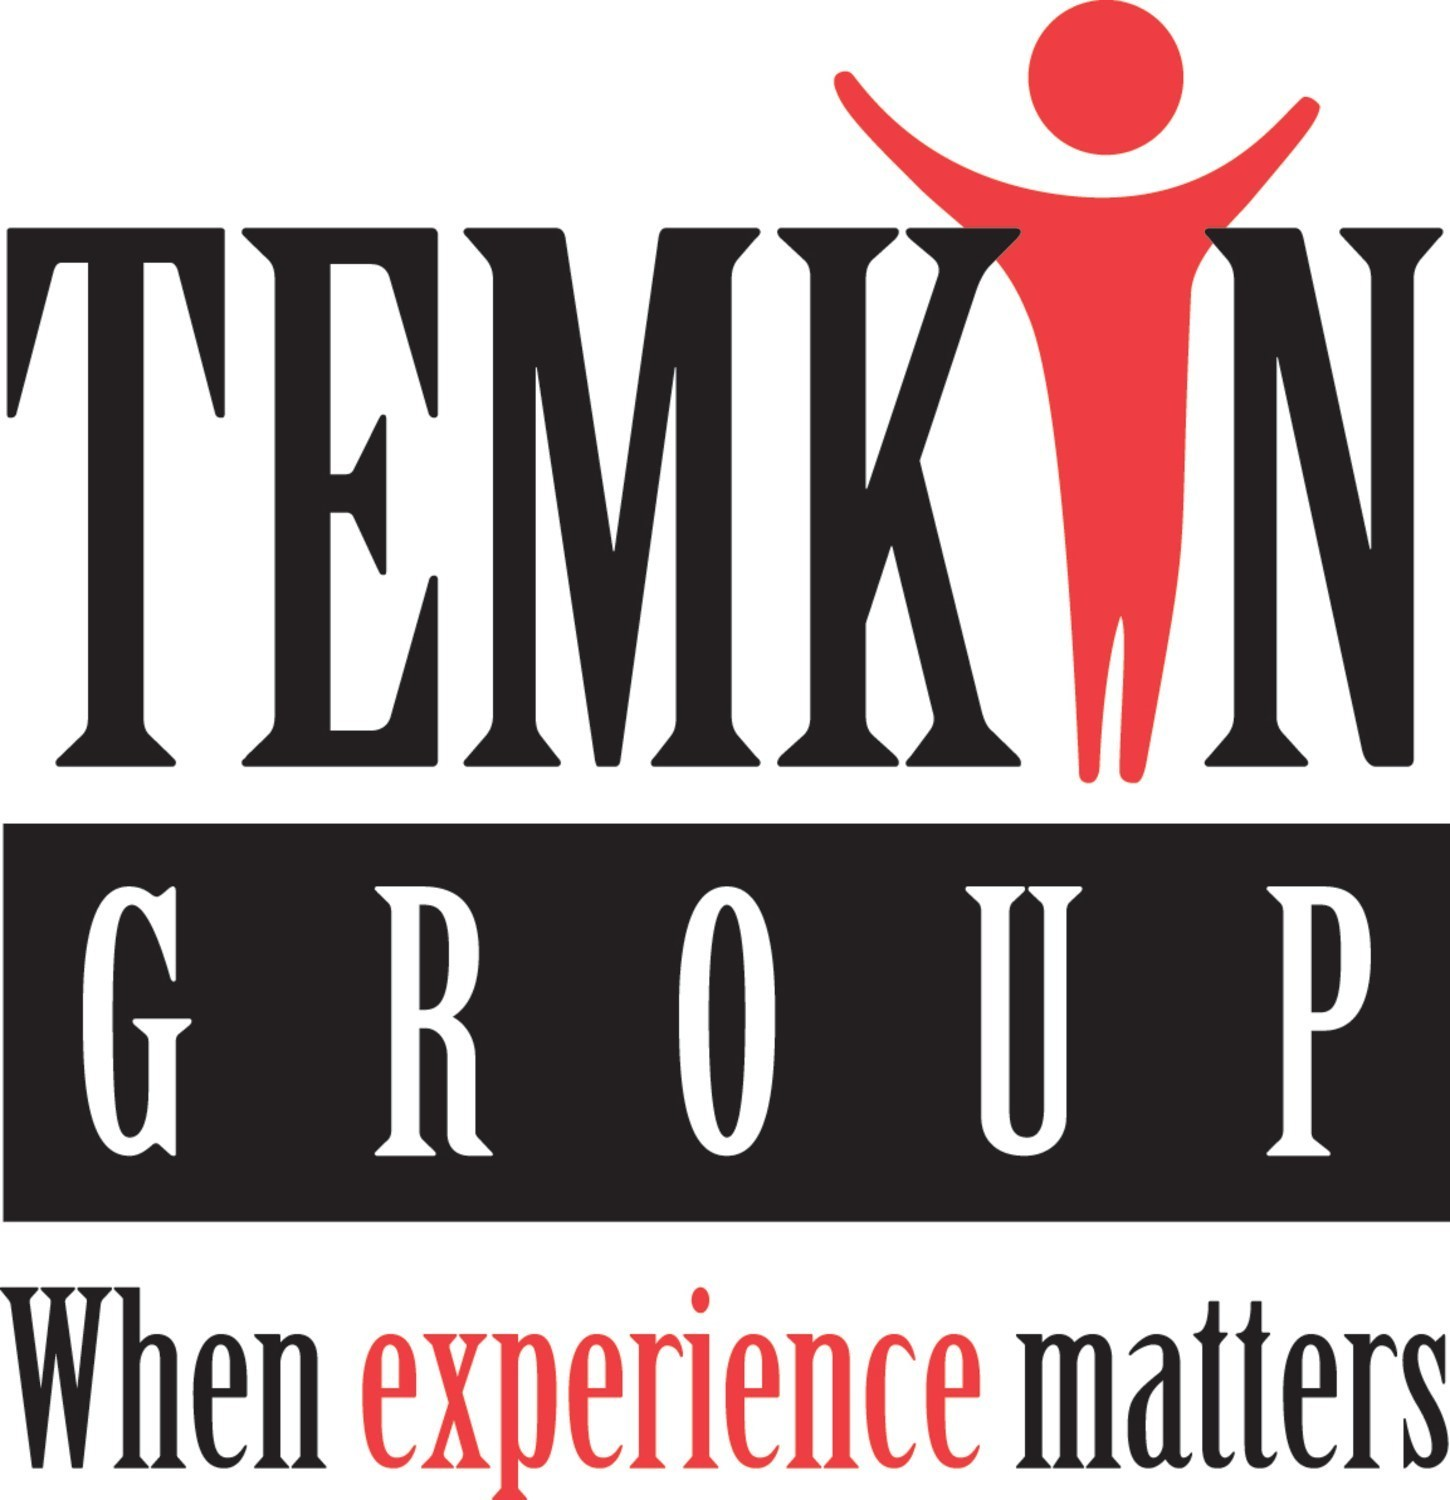 Temkin Group: When Experience Matters. Experts in customer experience transformation and customer-centric culture. (Visit TemkinGroup.com)